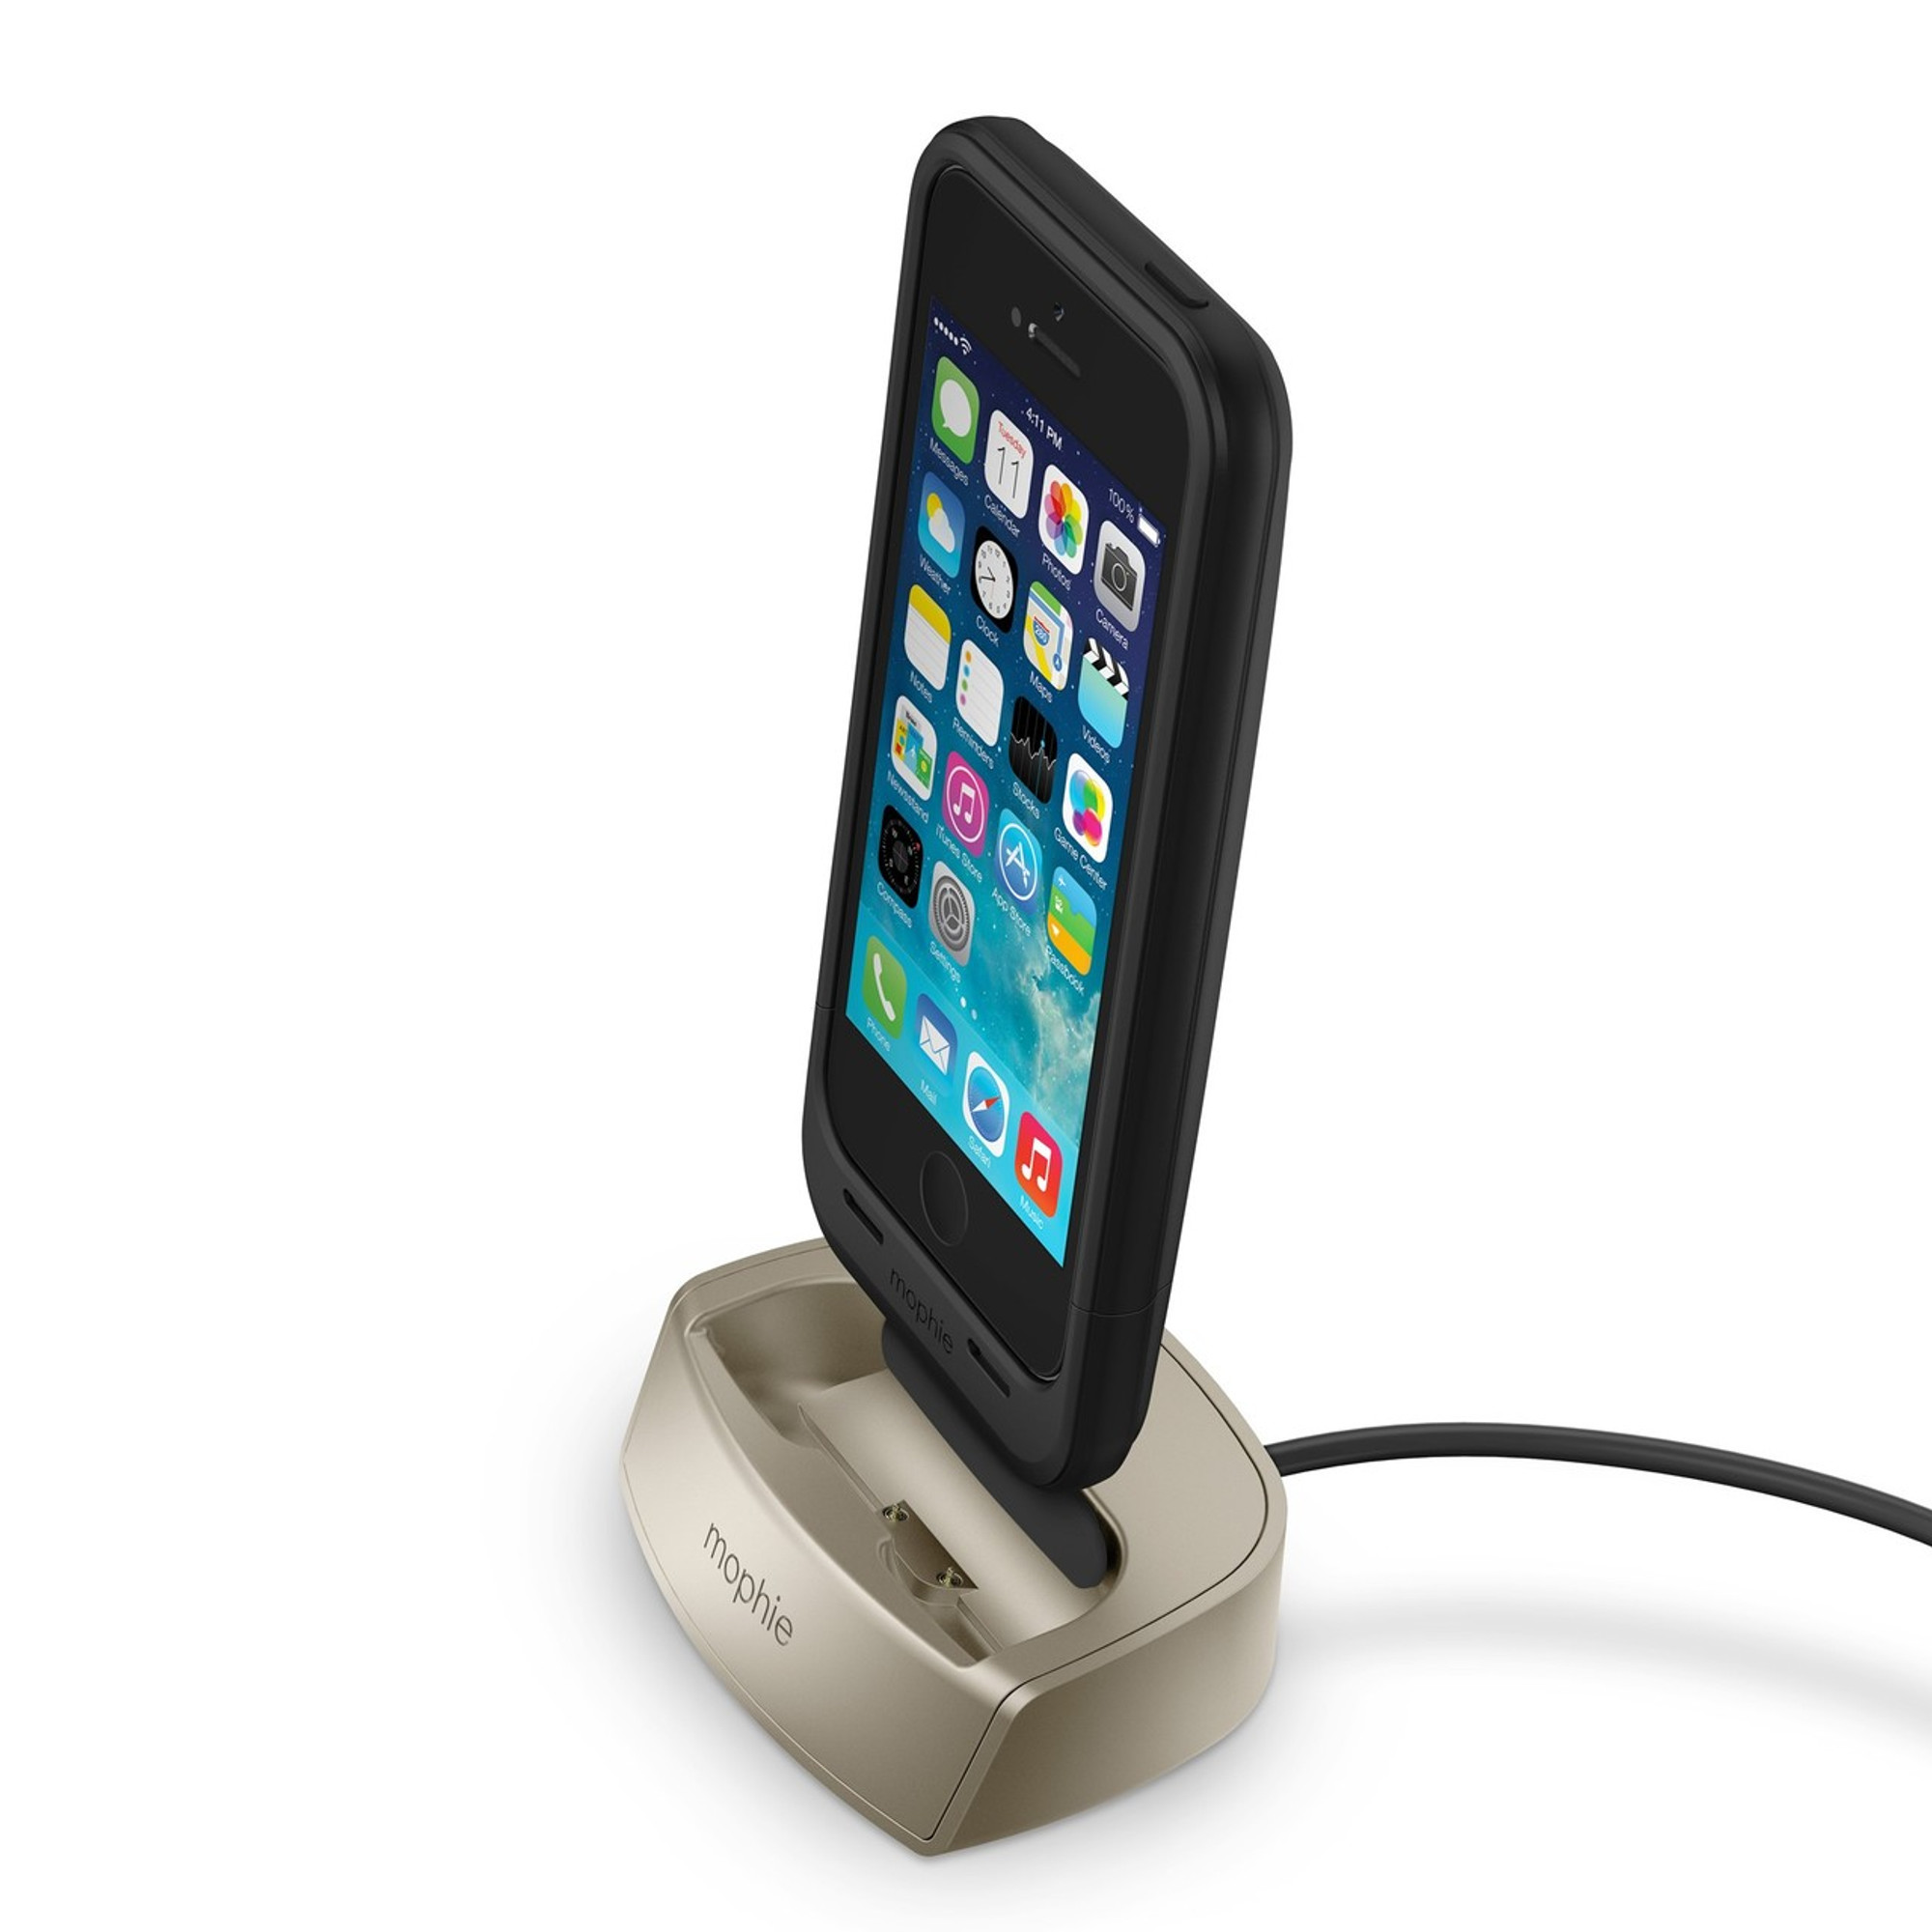 best sneakers 69aea ea7f7 mophie juice pack dock for juice pack iPhone 5s / 5 cases - Gold